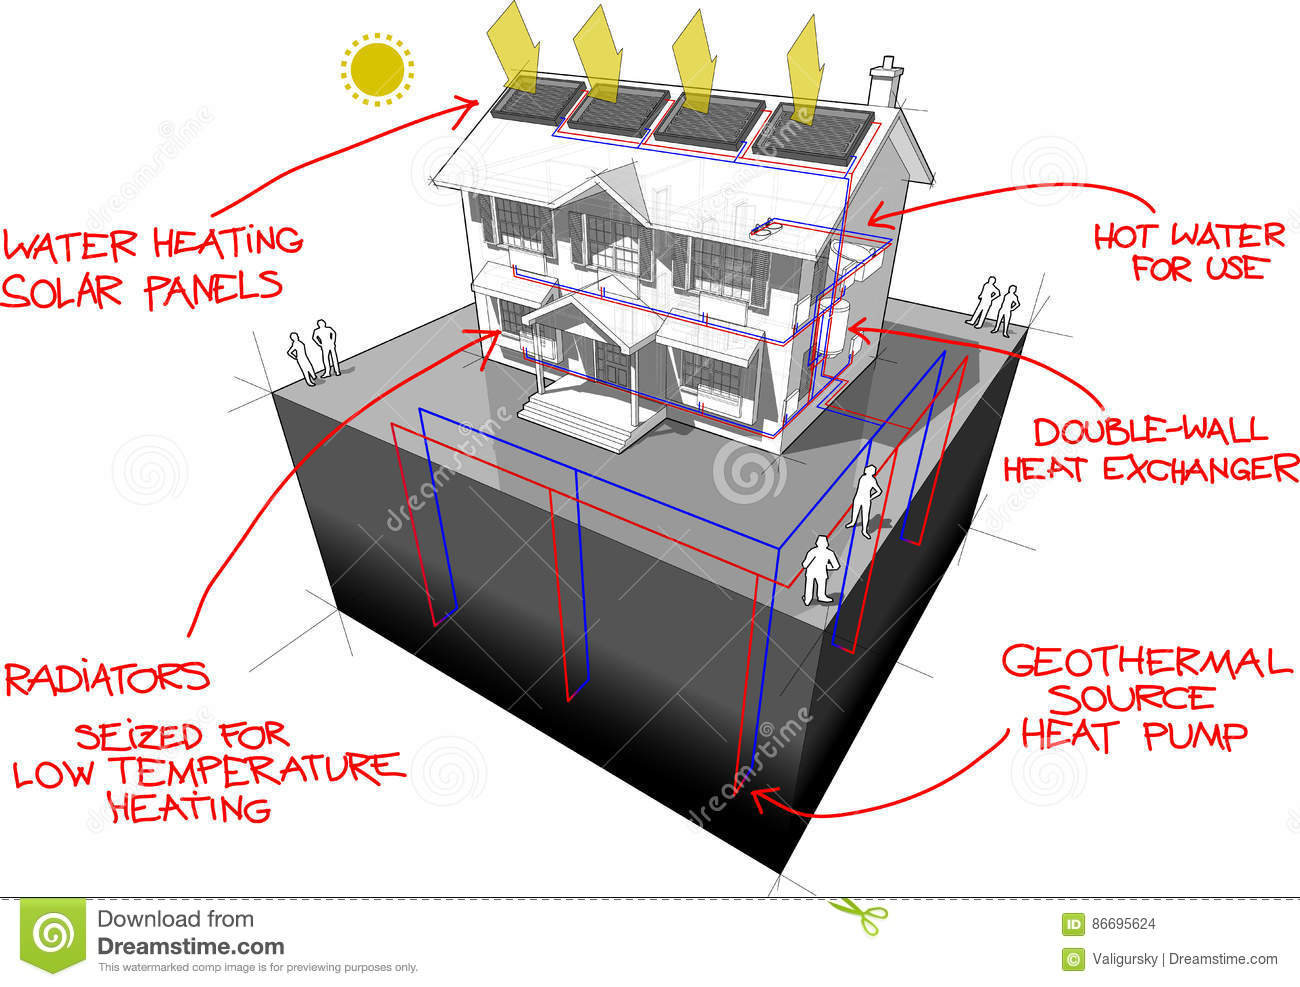 hight resolution of diagram of a classic colonial house with ground source heat pump and solar panels on the roof as source of energy for heating and radiators and red hand